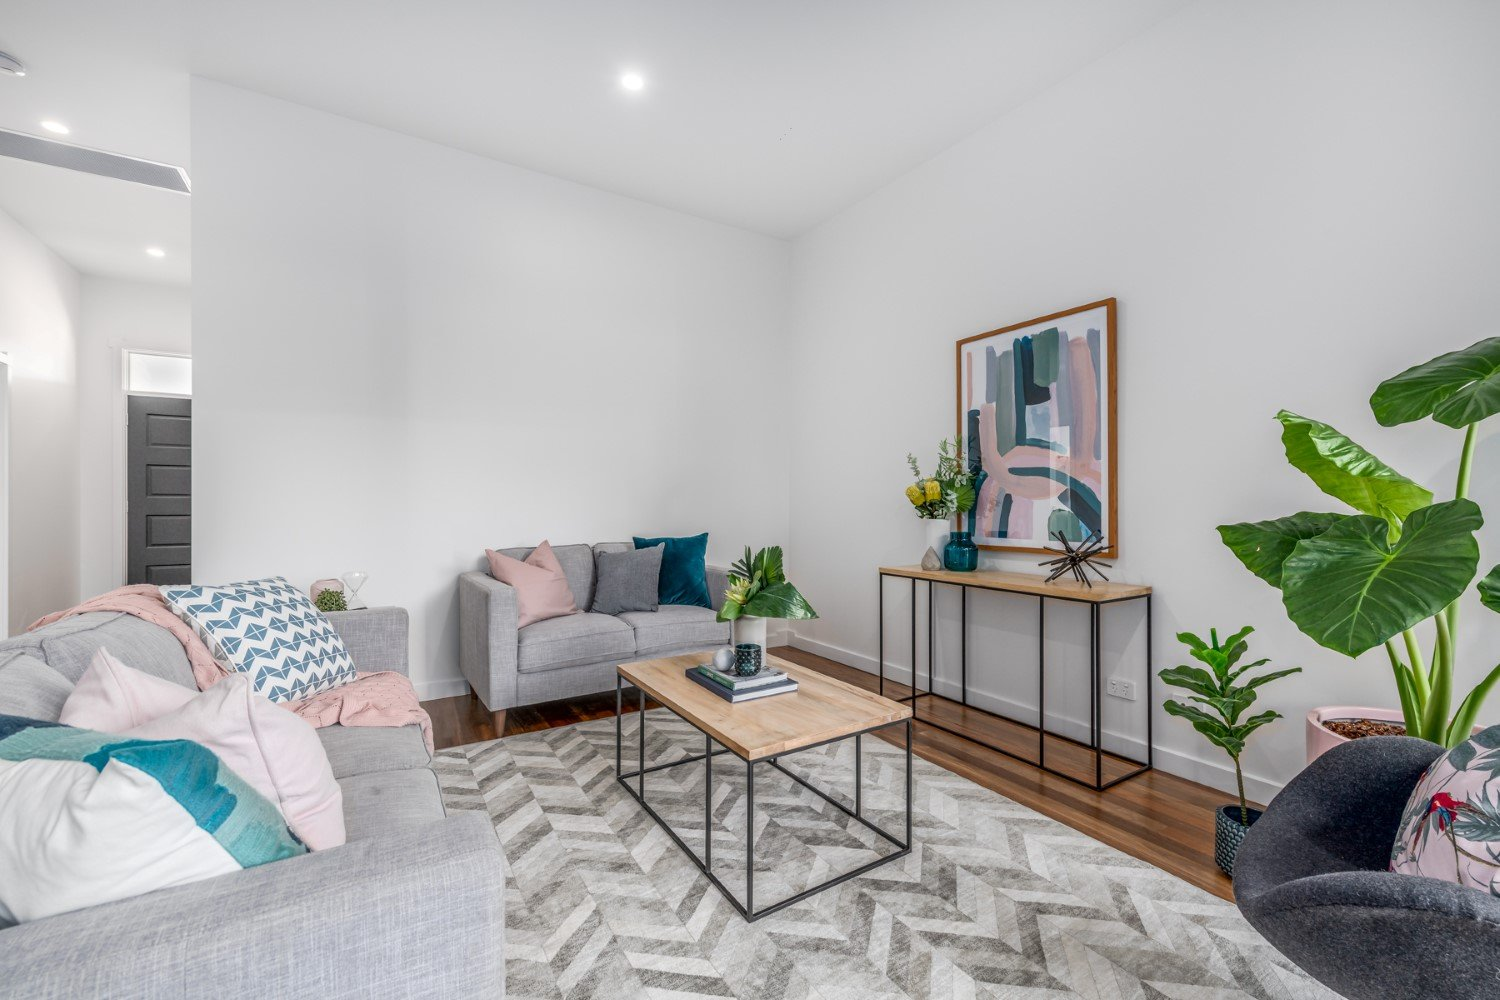 Renovated Family Home | New Lambton - https://www.peonyandsilk.com.au/wp-content/uploads/2019/02/Peony-and-Silk-Renovated-Family-Home-New-Lambton-22.jpg